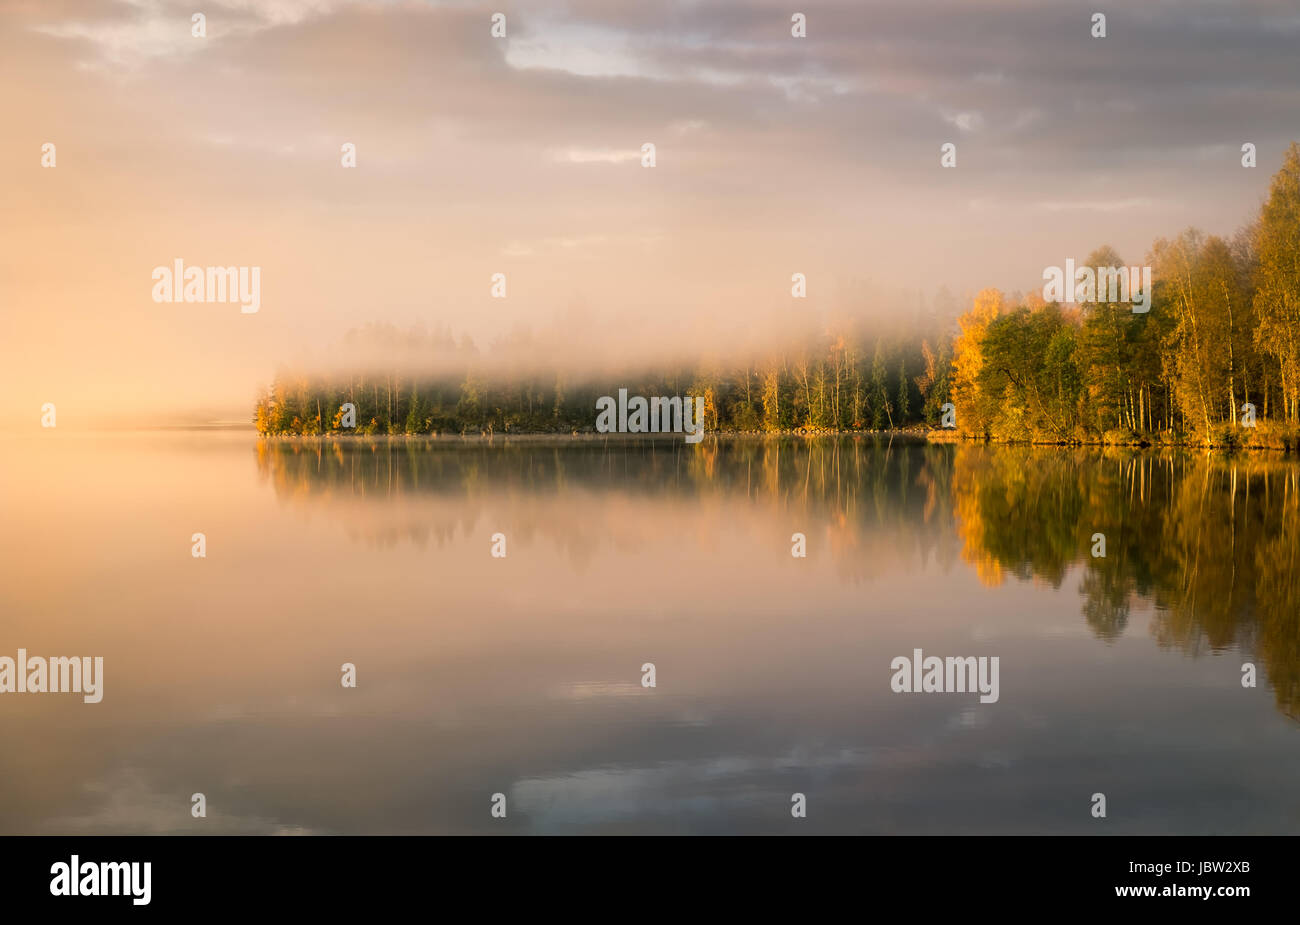 Scenic landscape with lake and fall colors at morning light Stock Photo